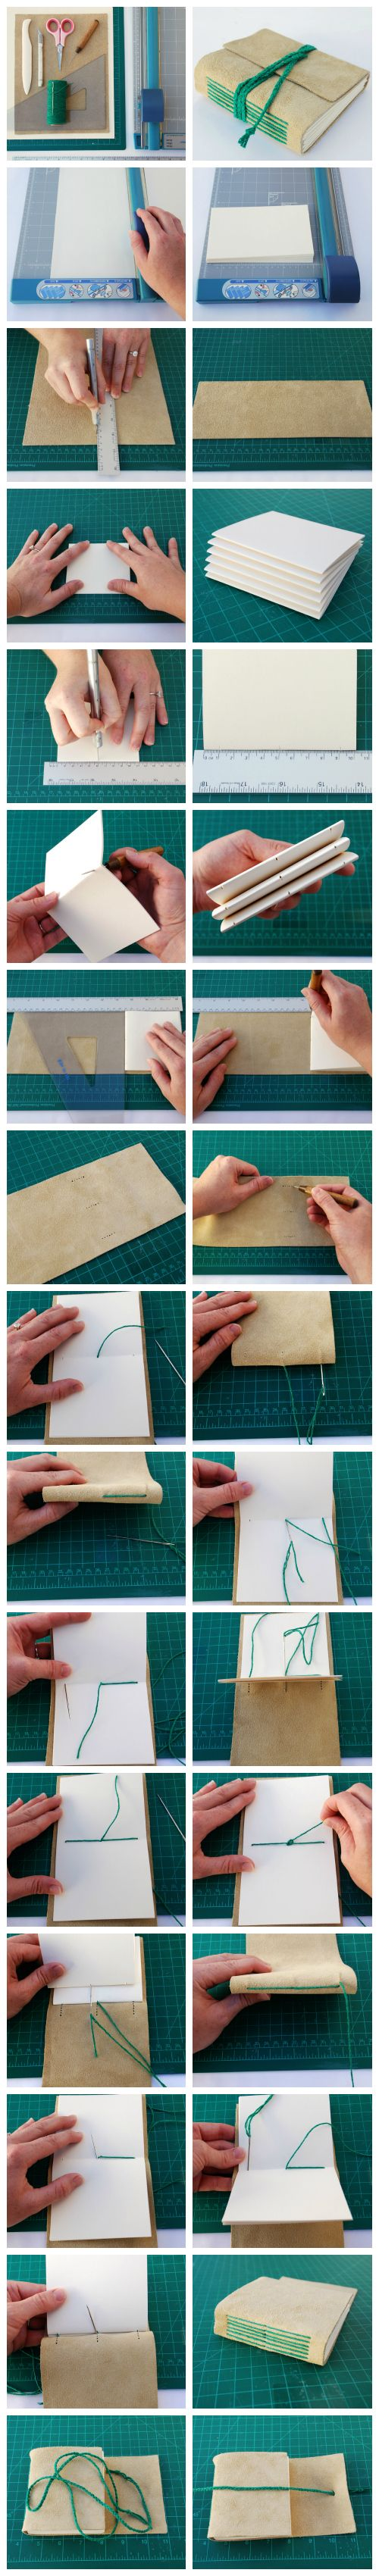 Encuadernado con puntada larga   -   Long-stitch tutorial by Erica Craft